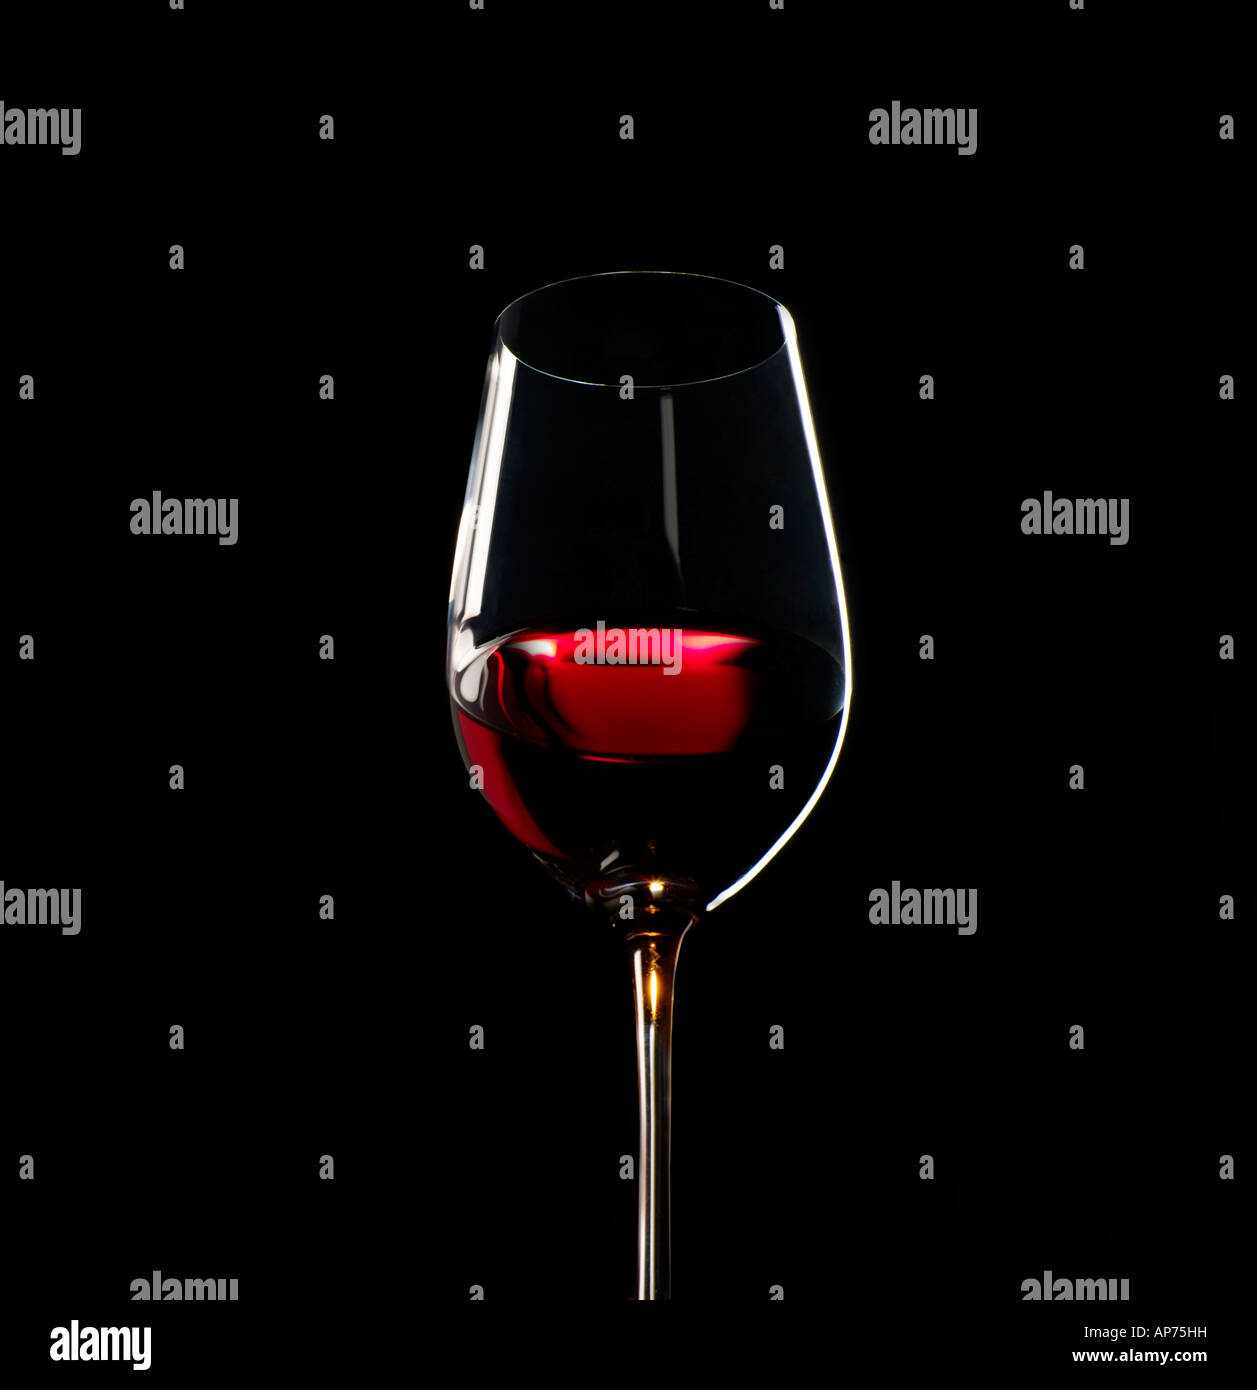 Red Wine in Glass showing the subtle hues of the ageing process - Stock Image